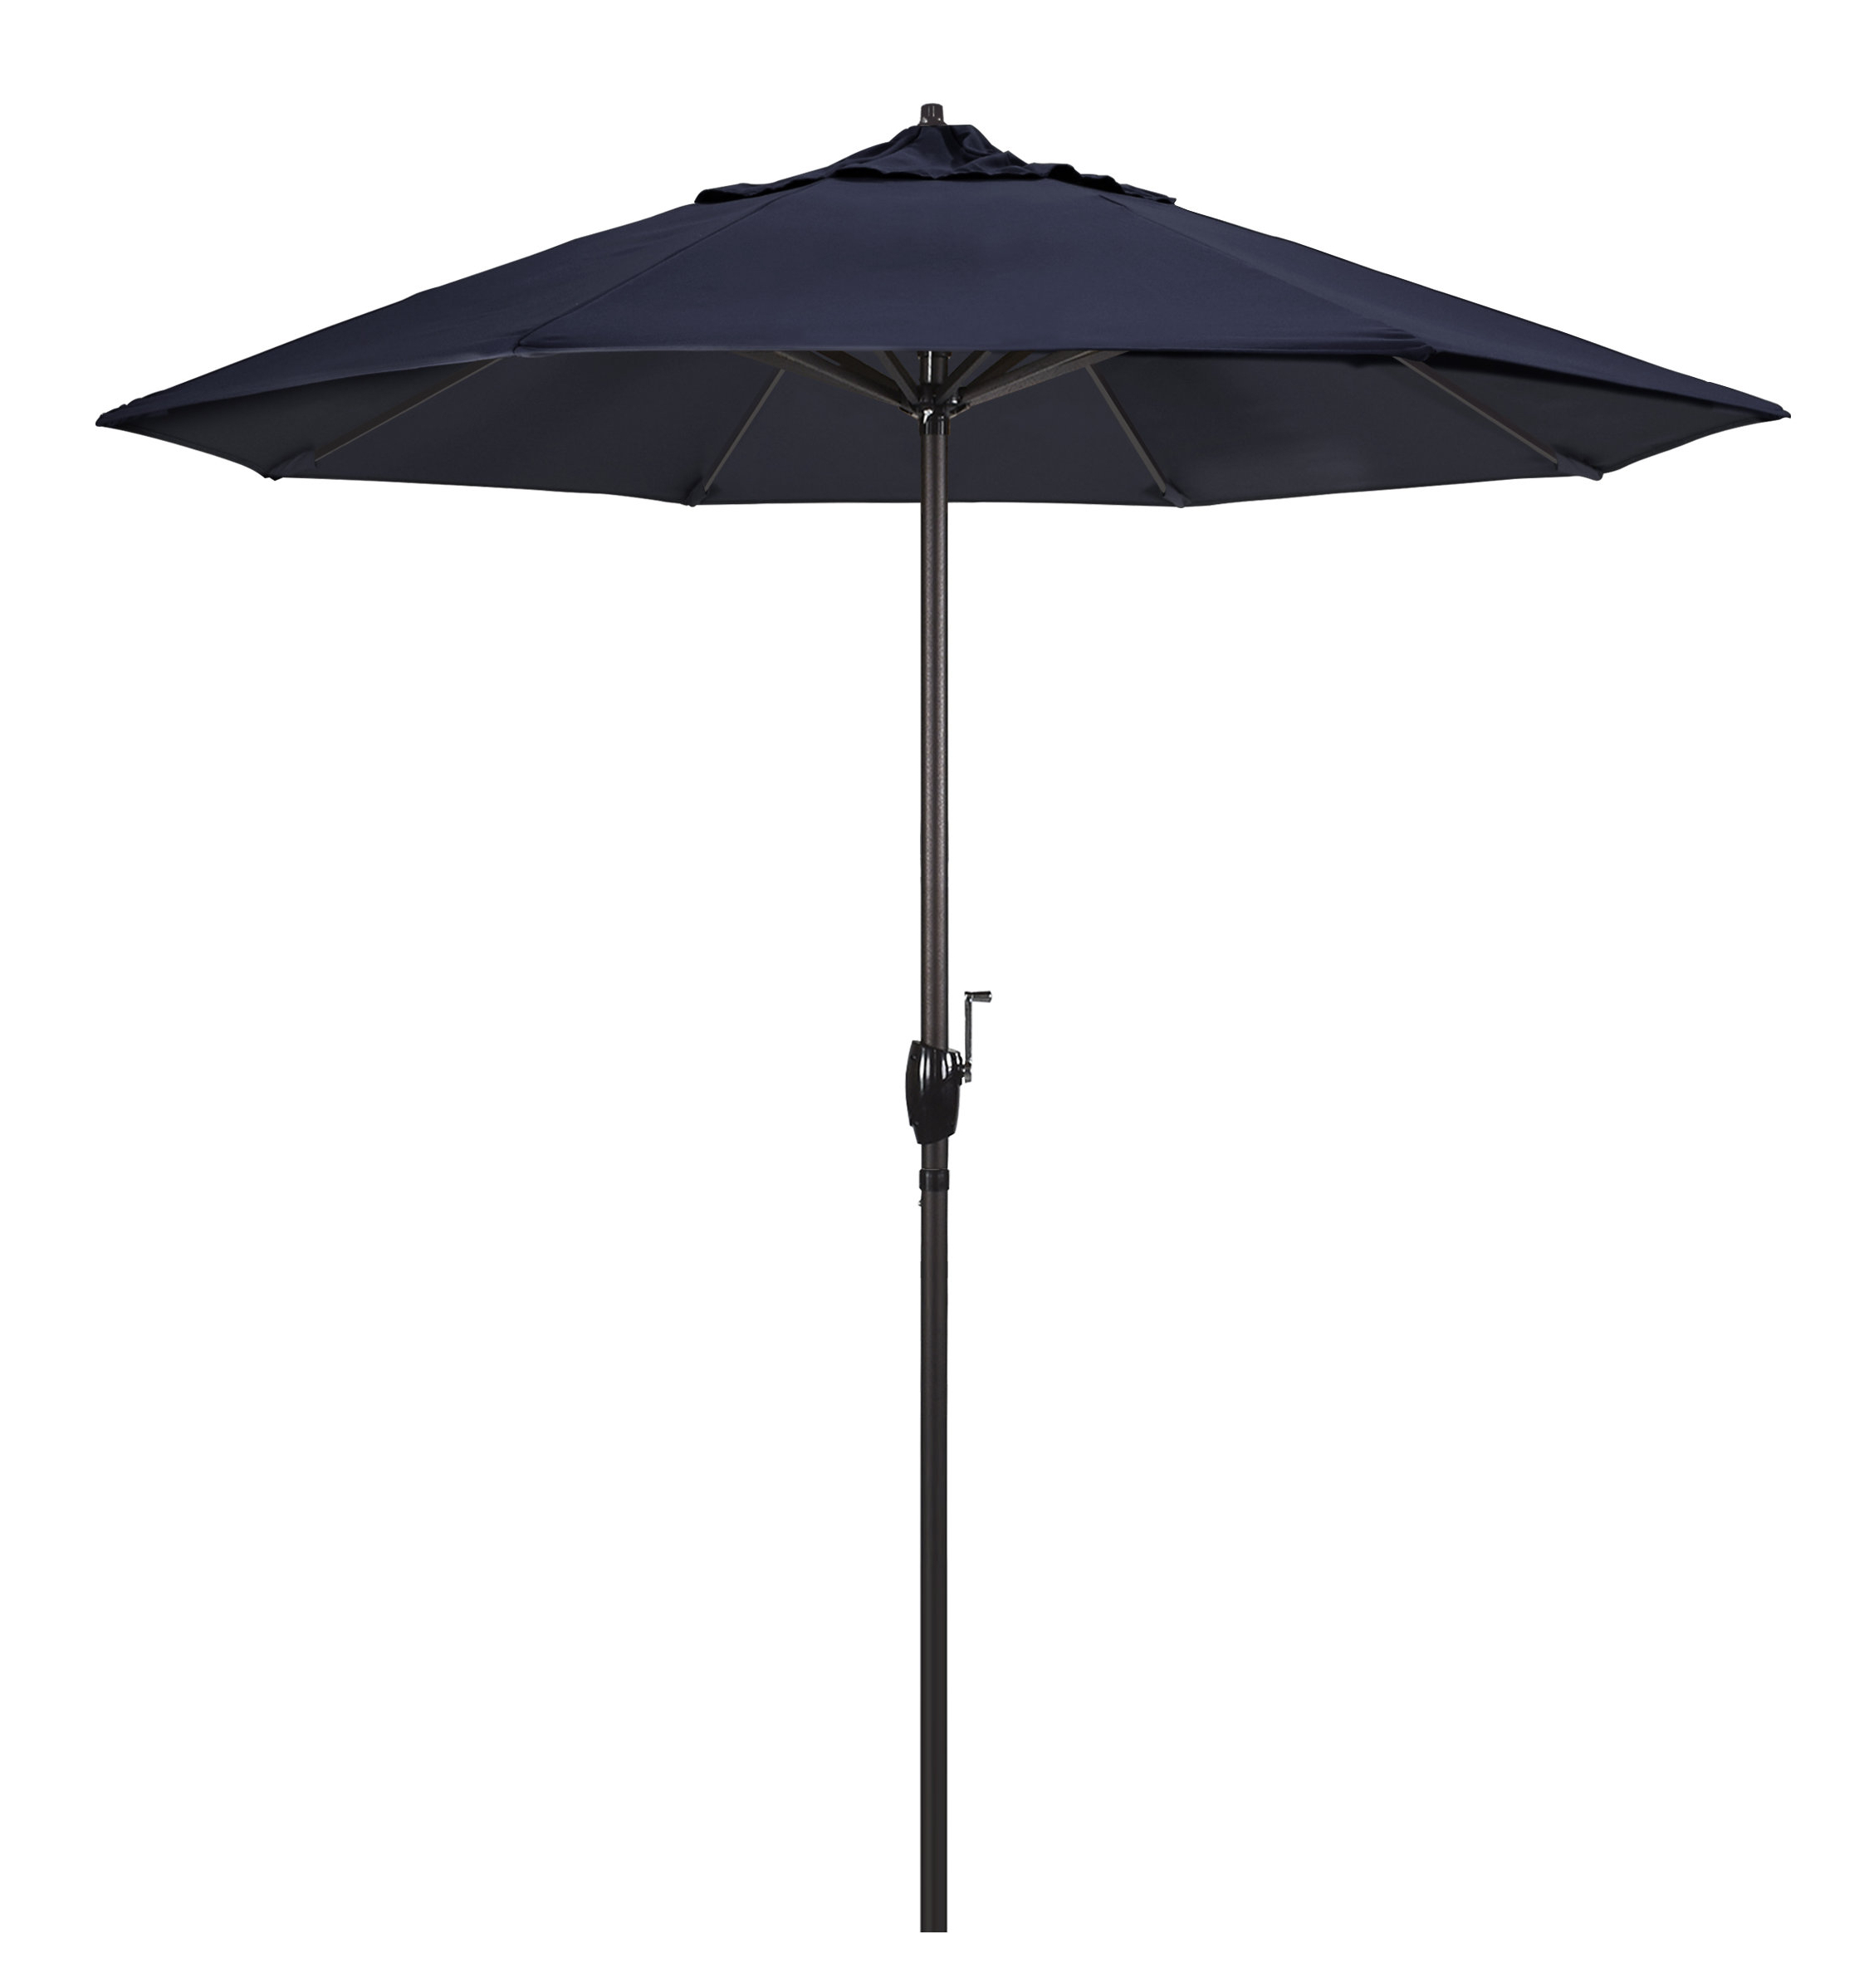 Nunn 8' Market Umbrella For Preferred Julian Market Umbrellas (View 17 of 20)